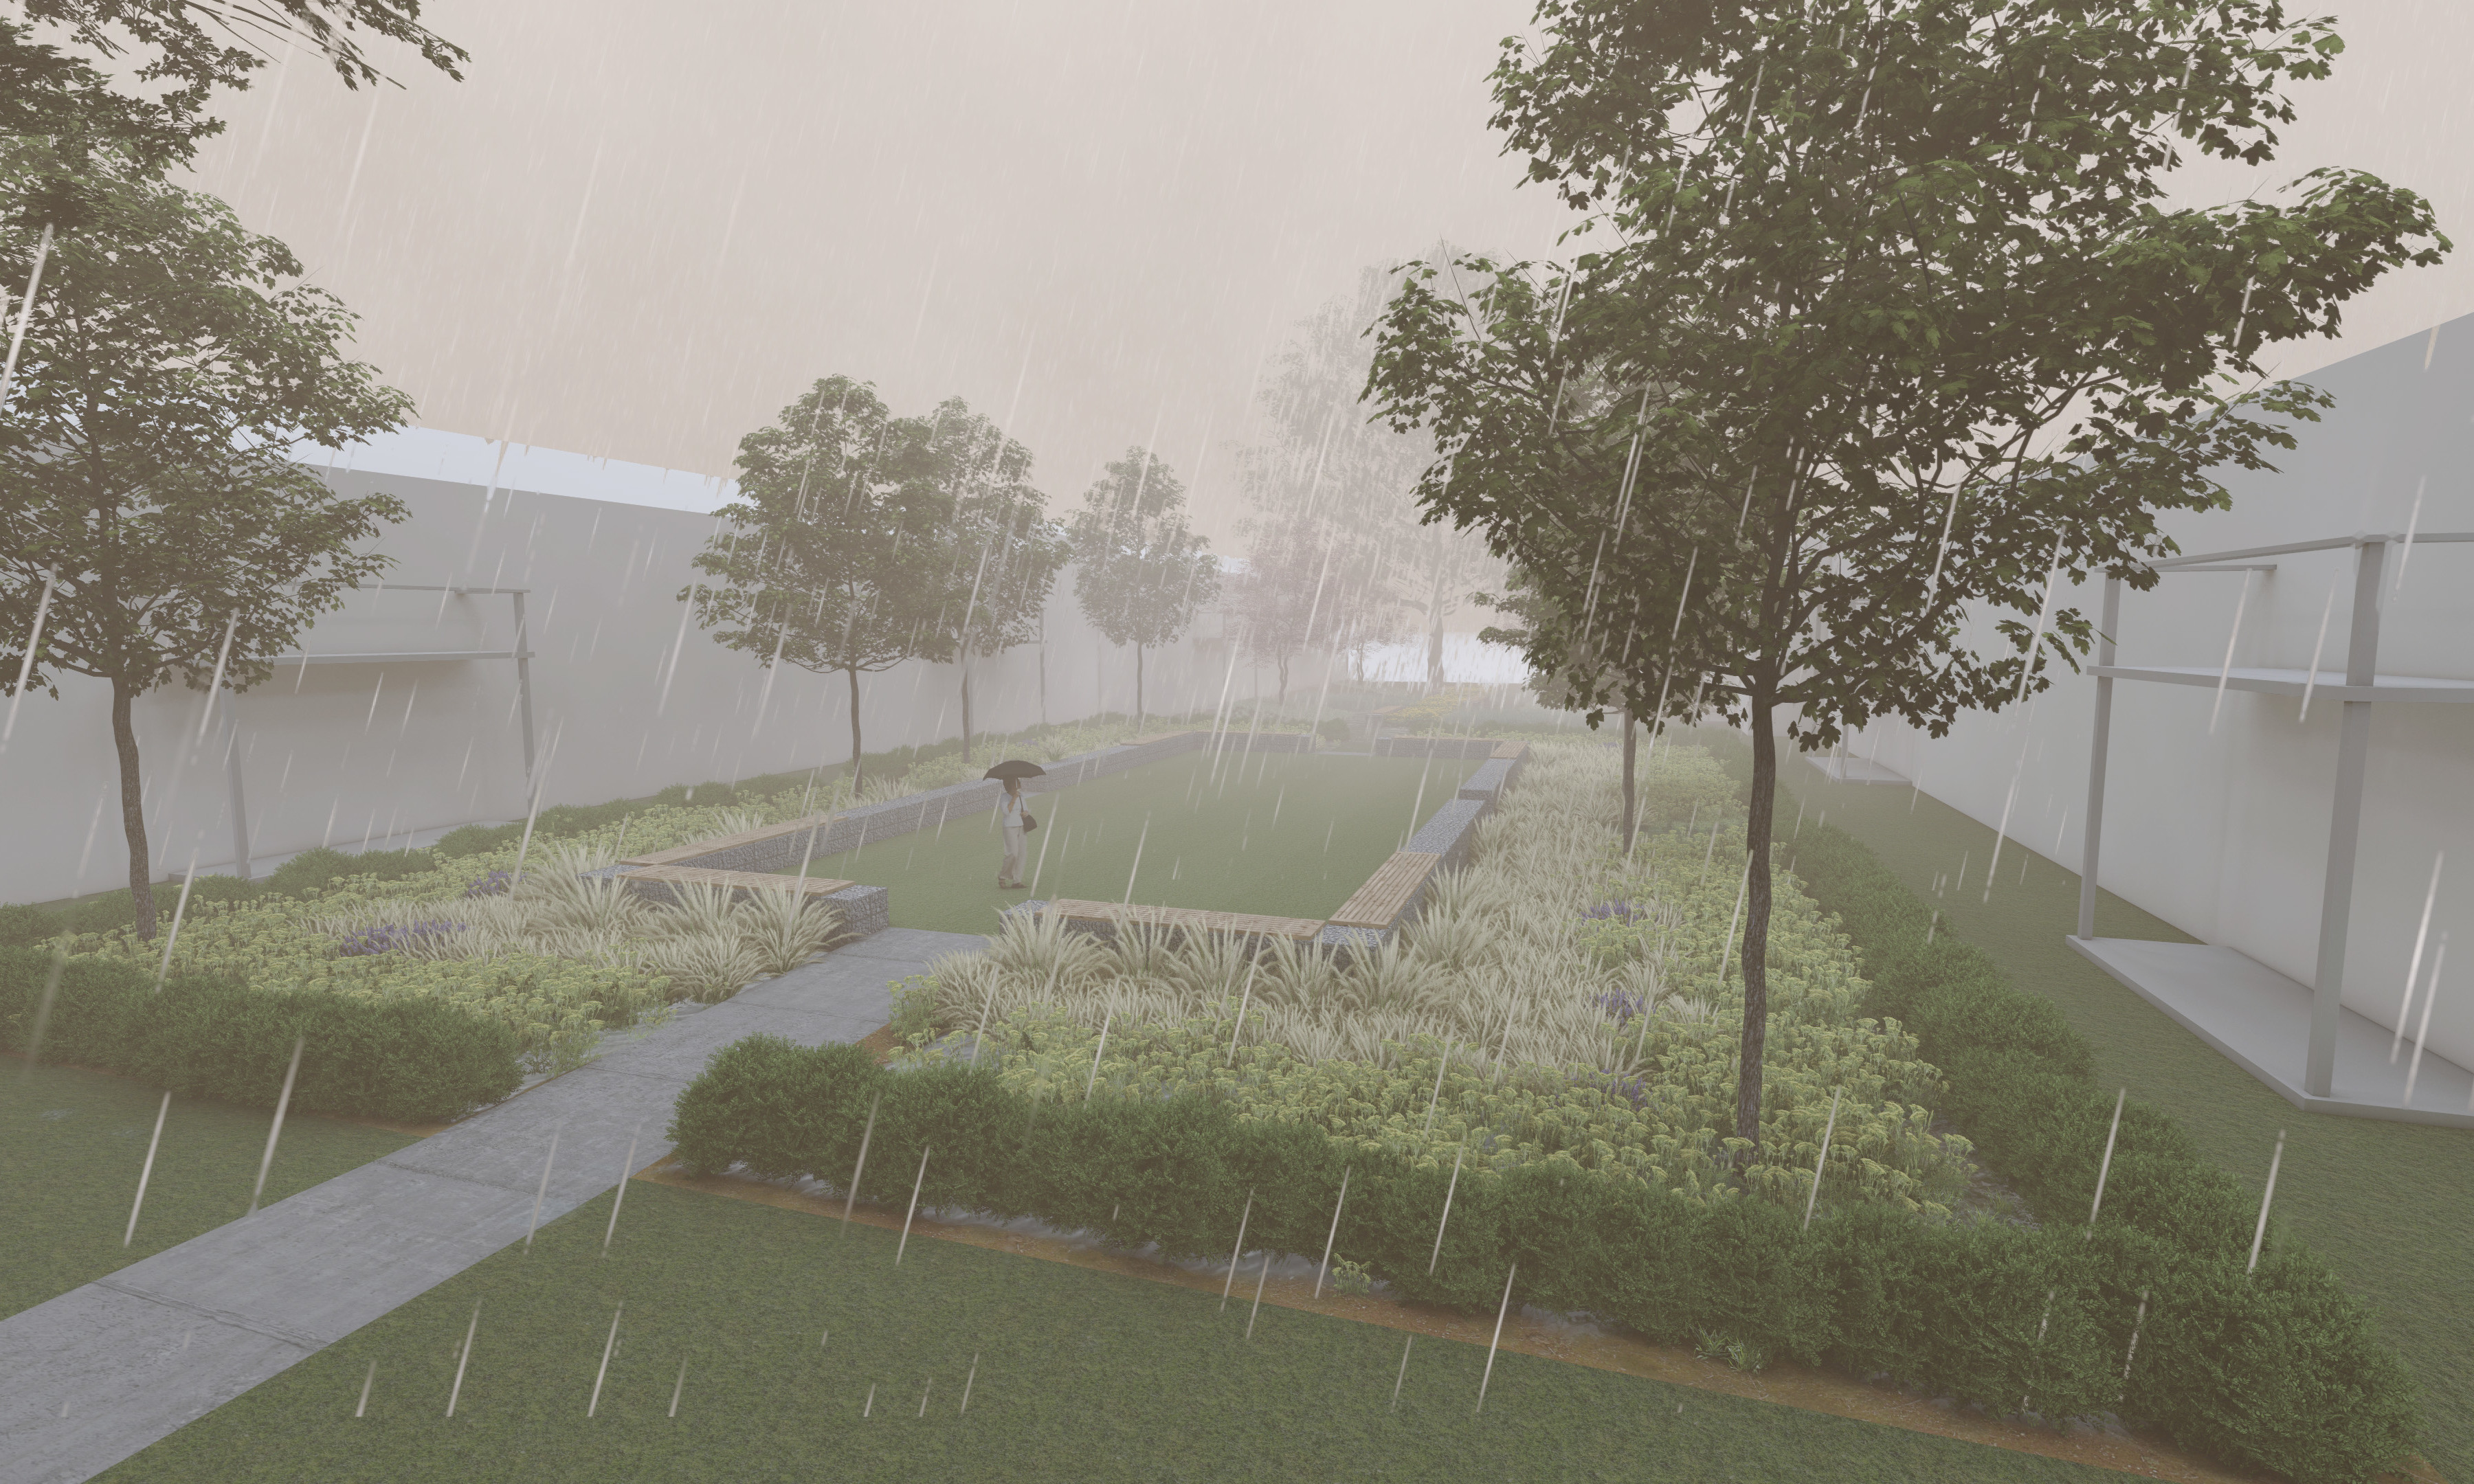 Managing Stormwater Efficiently & Sustainably